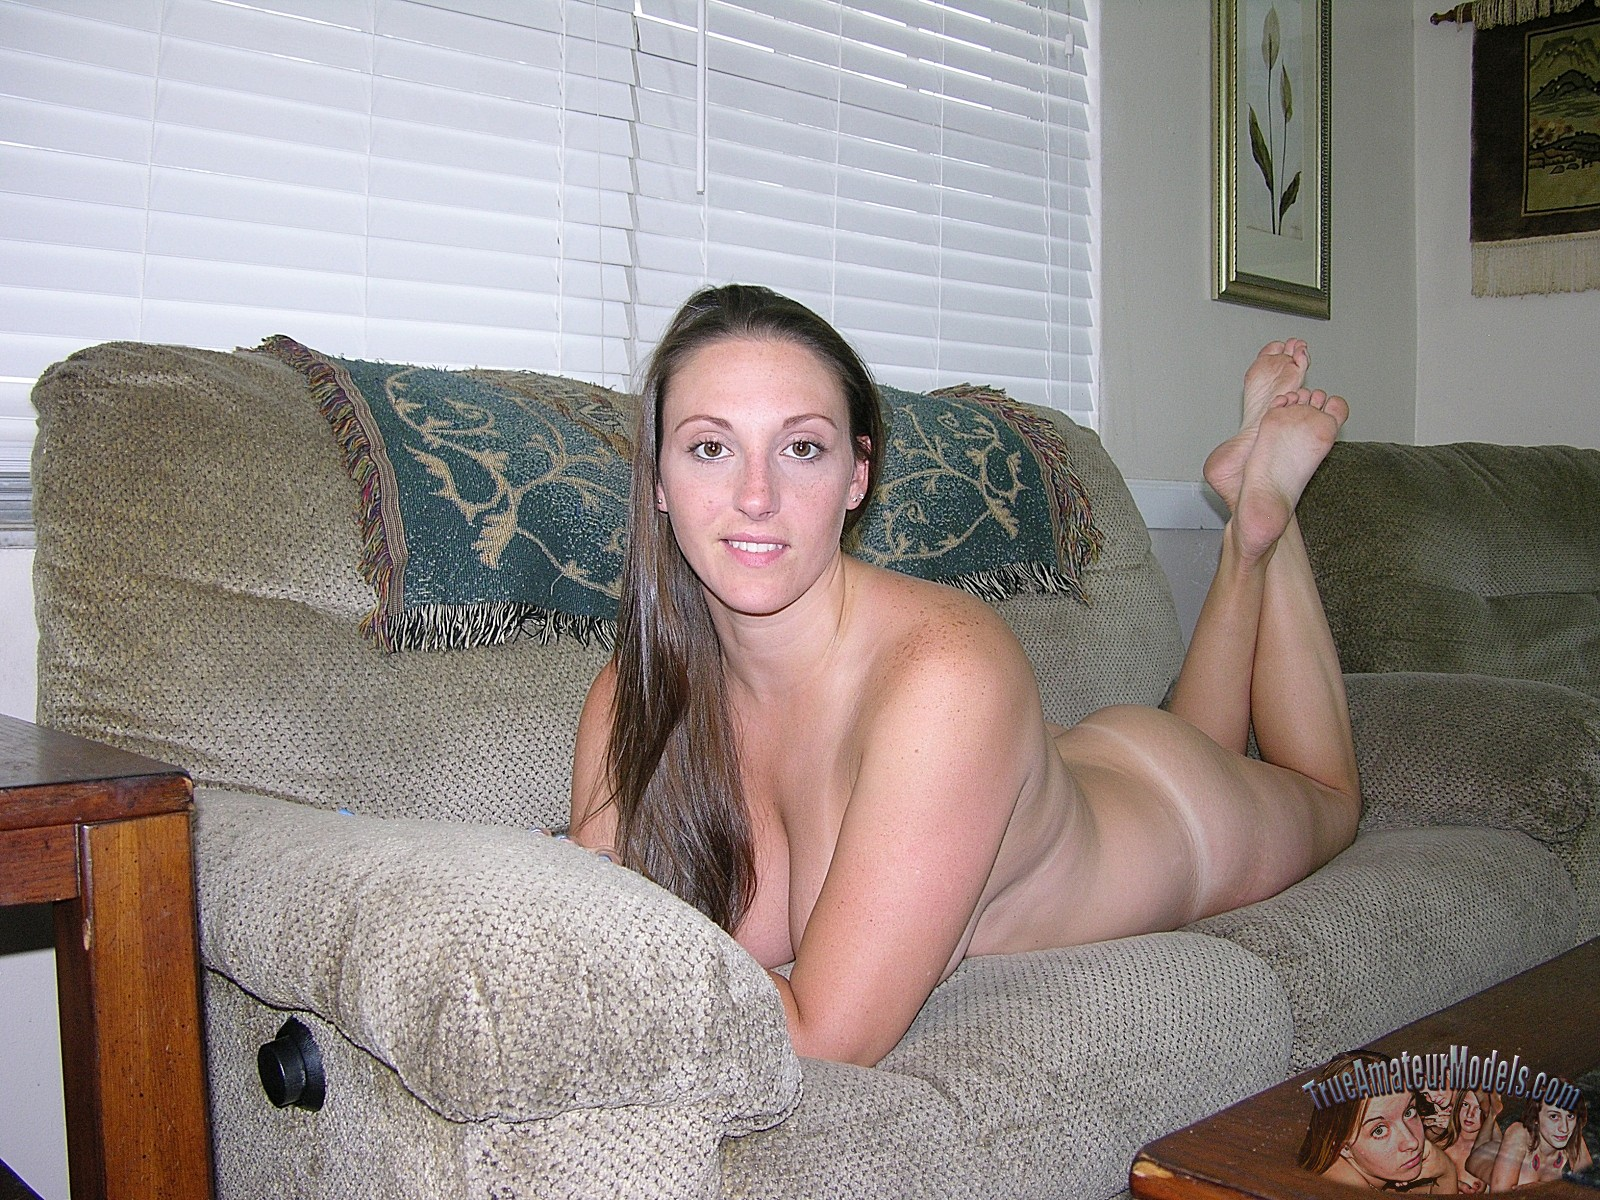 Thick amature nude model